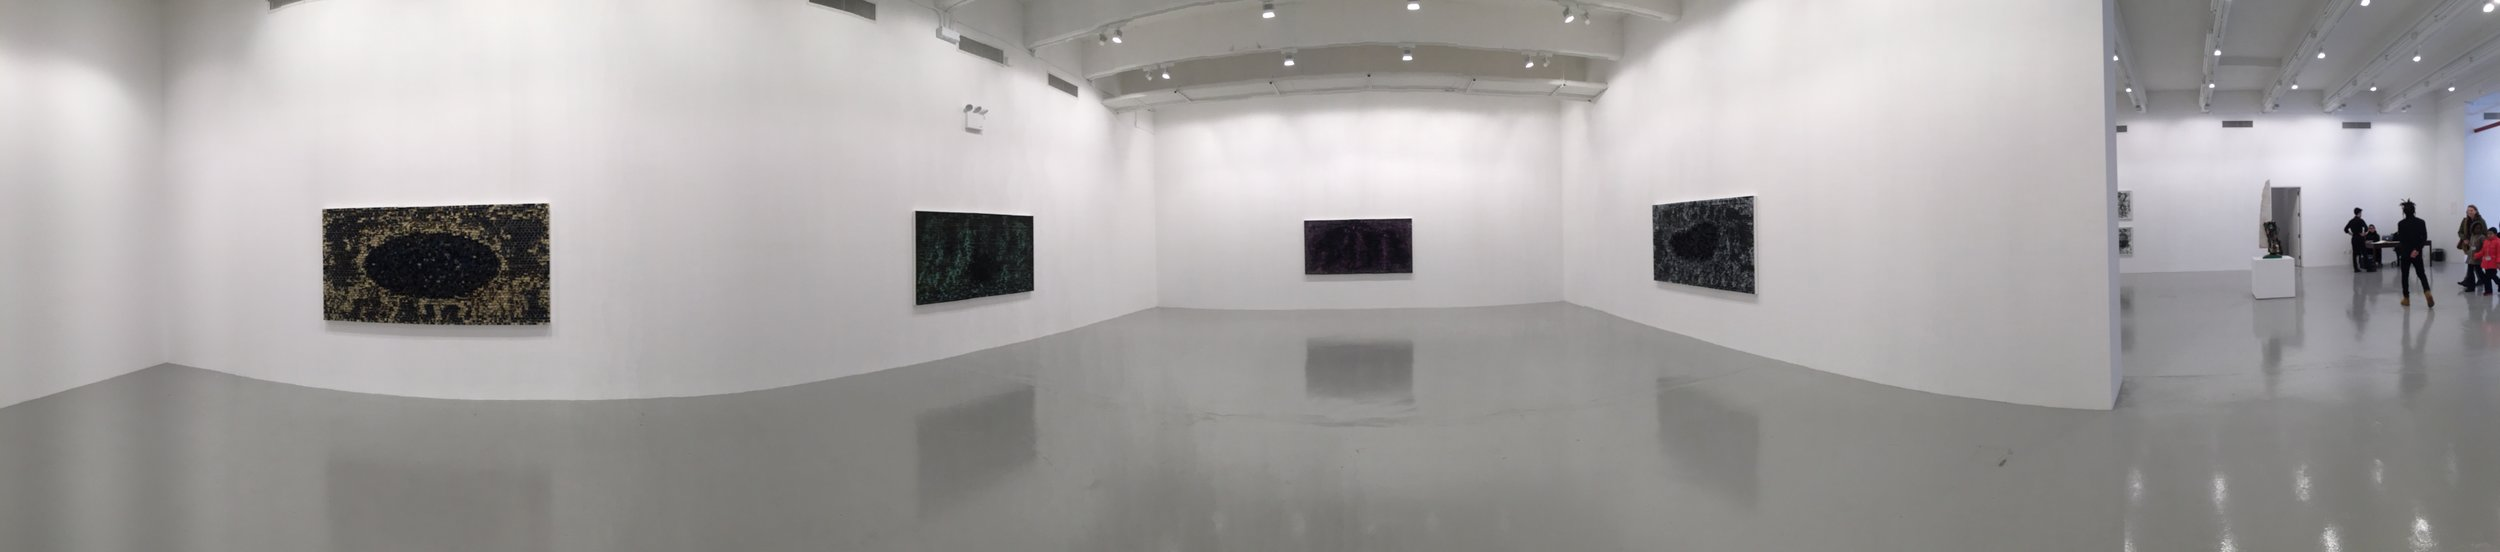 Installation image,  Jack Whitten , Hauser & Wirth, New York Photo Credit: Cincala Art Advisory